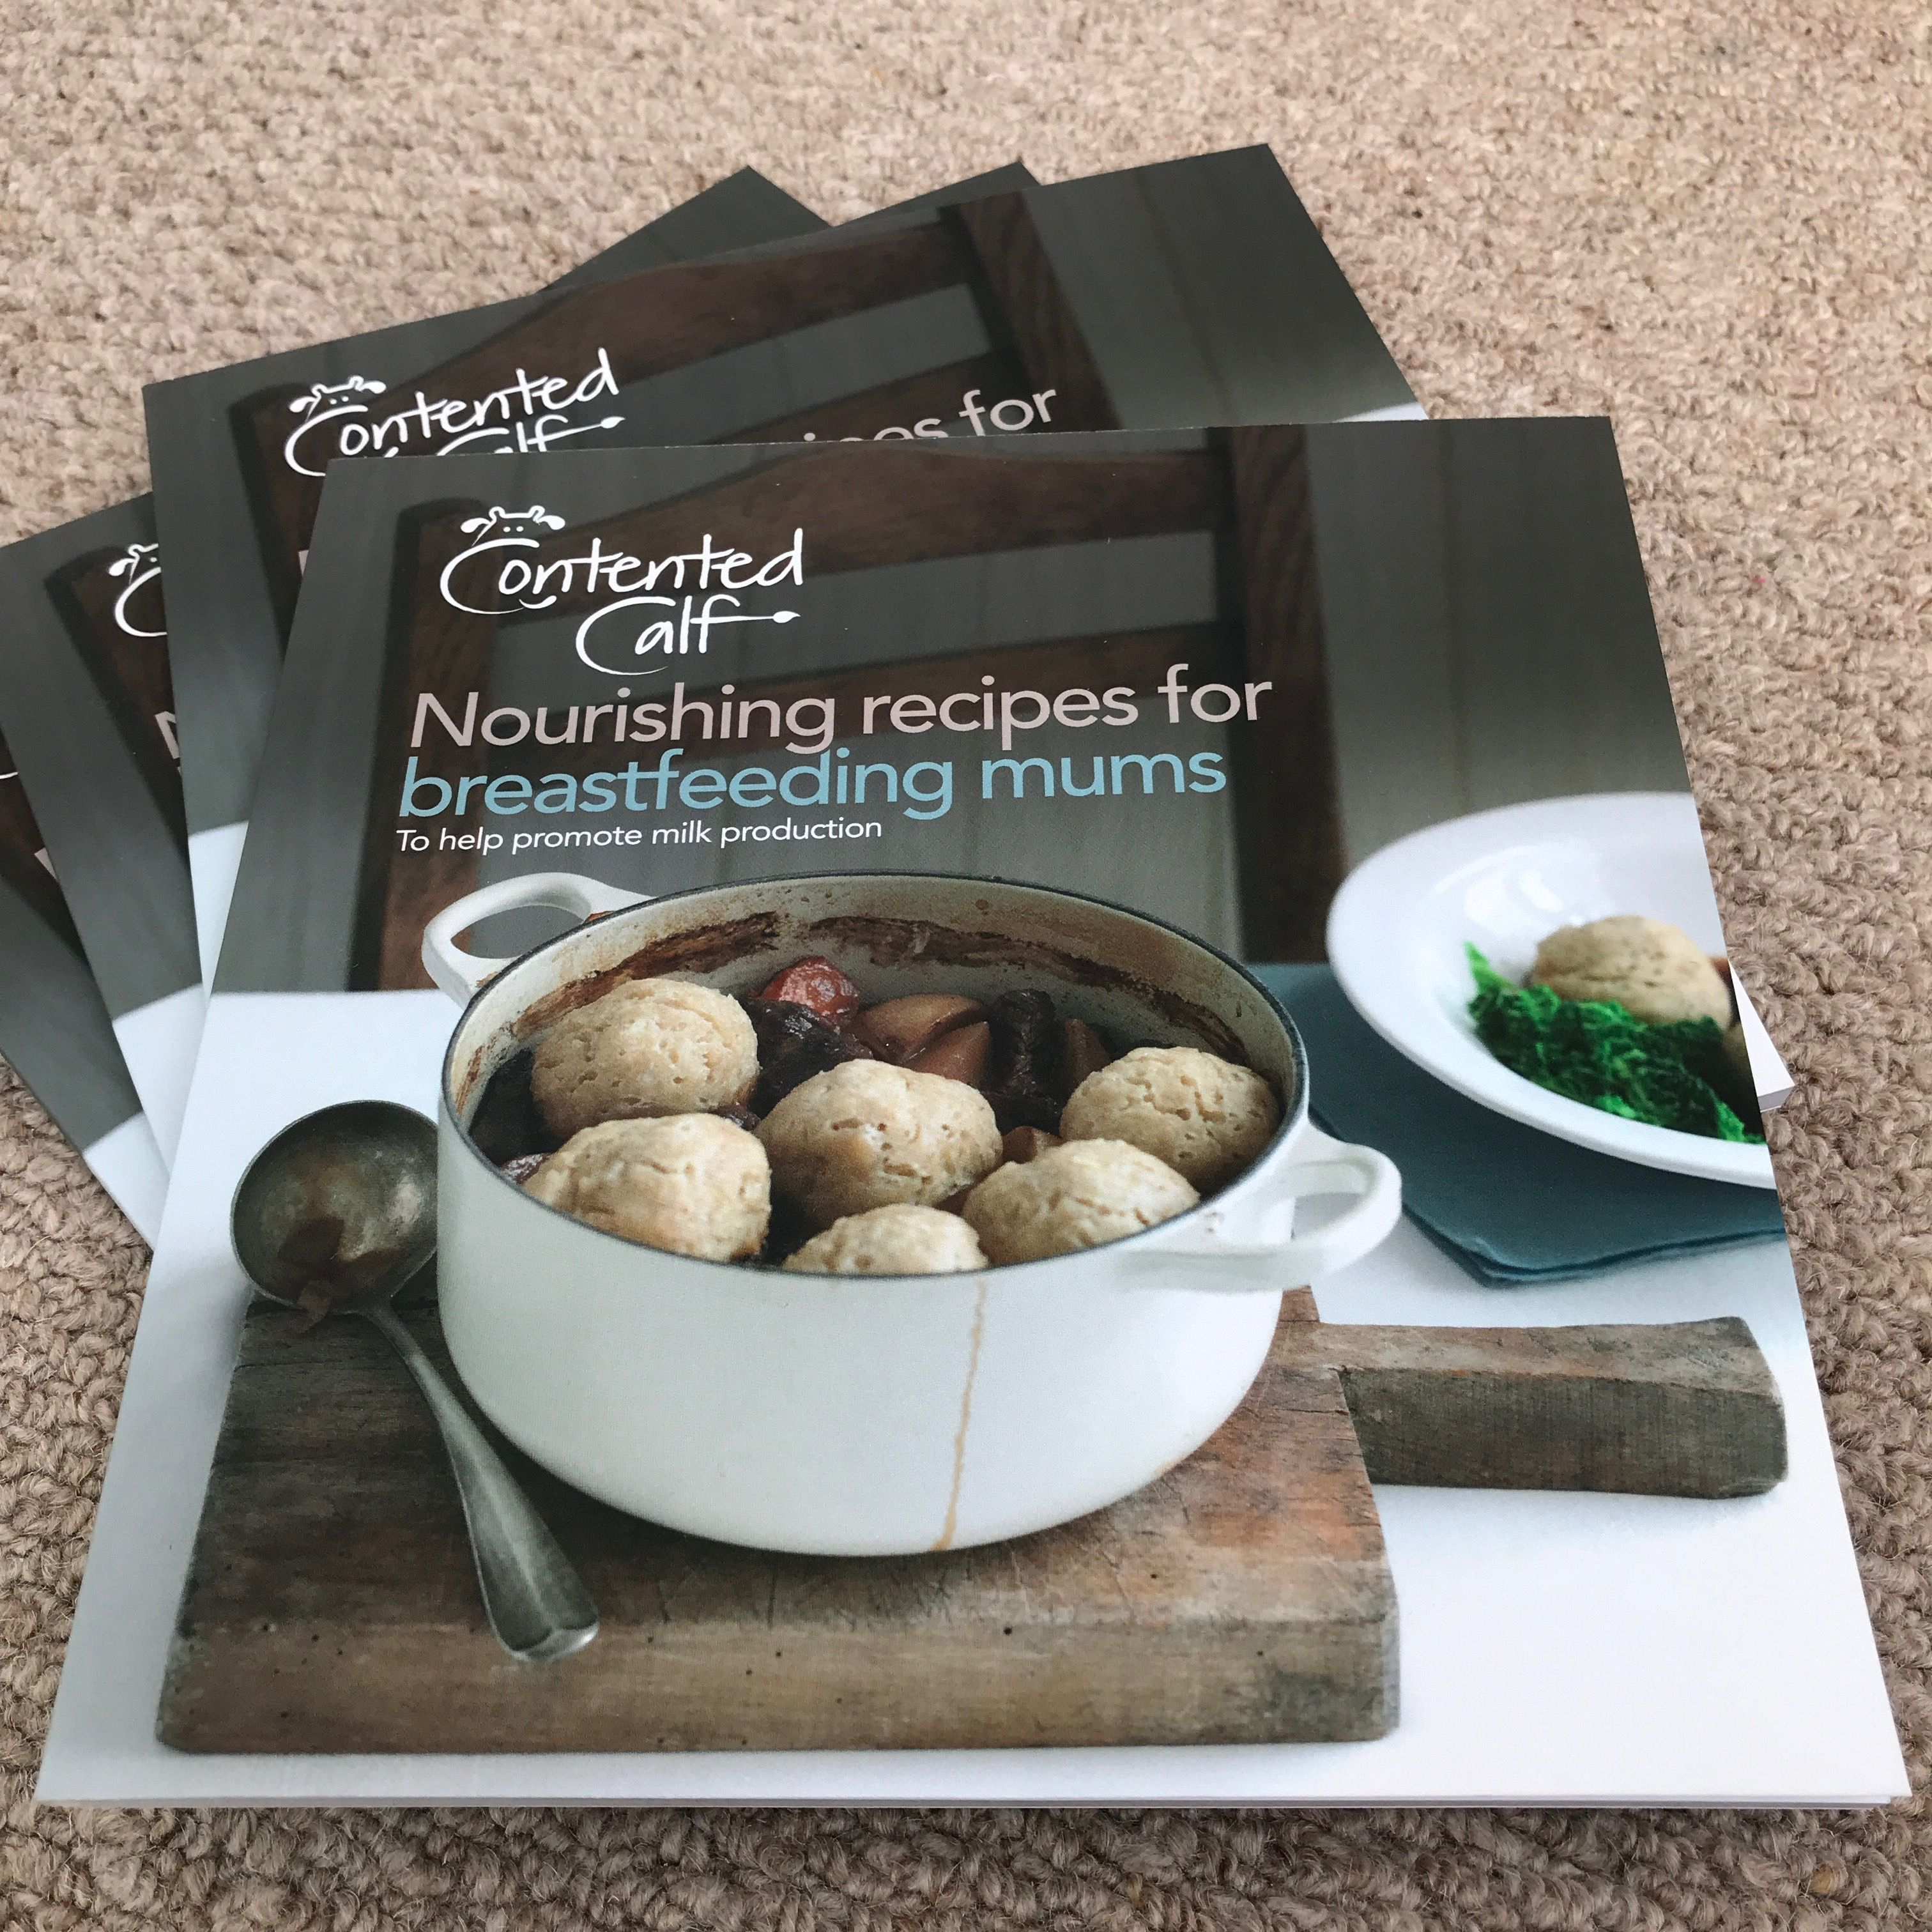 The Contented Calf Cookbook Nourishing Recipes for